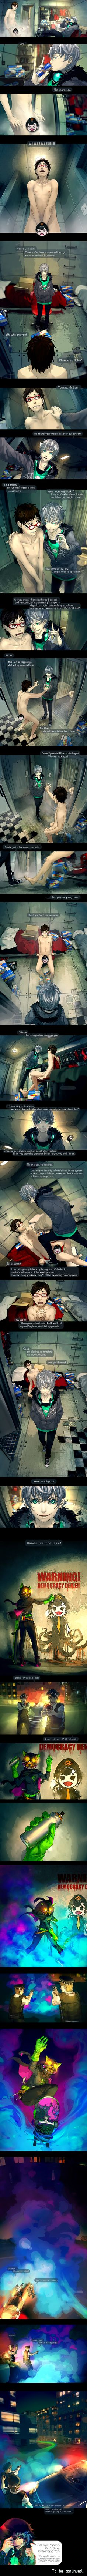 Fisheye Placebo: Ch1- Part 2 by yuumei.deviantart.com on @deviantART